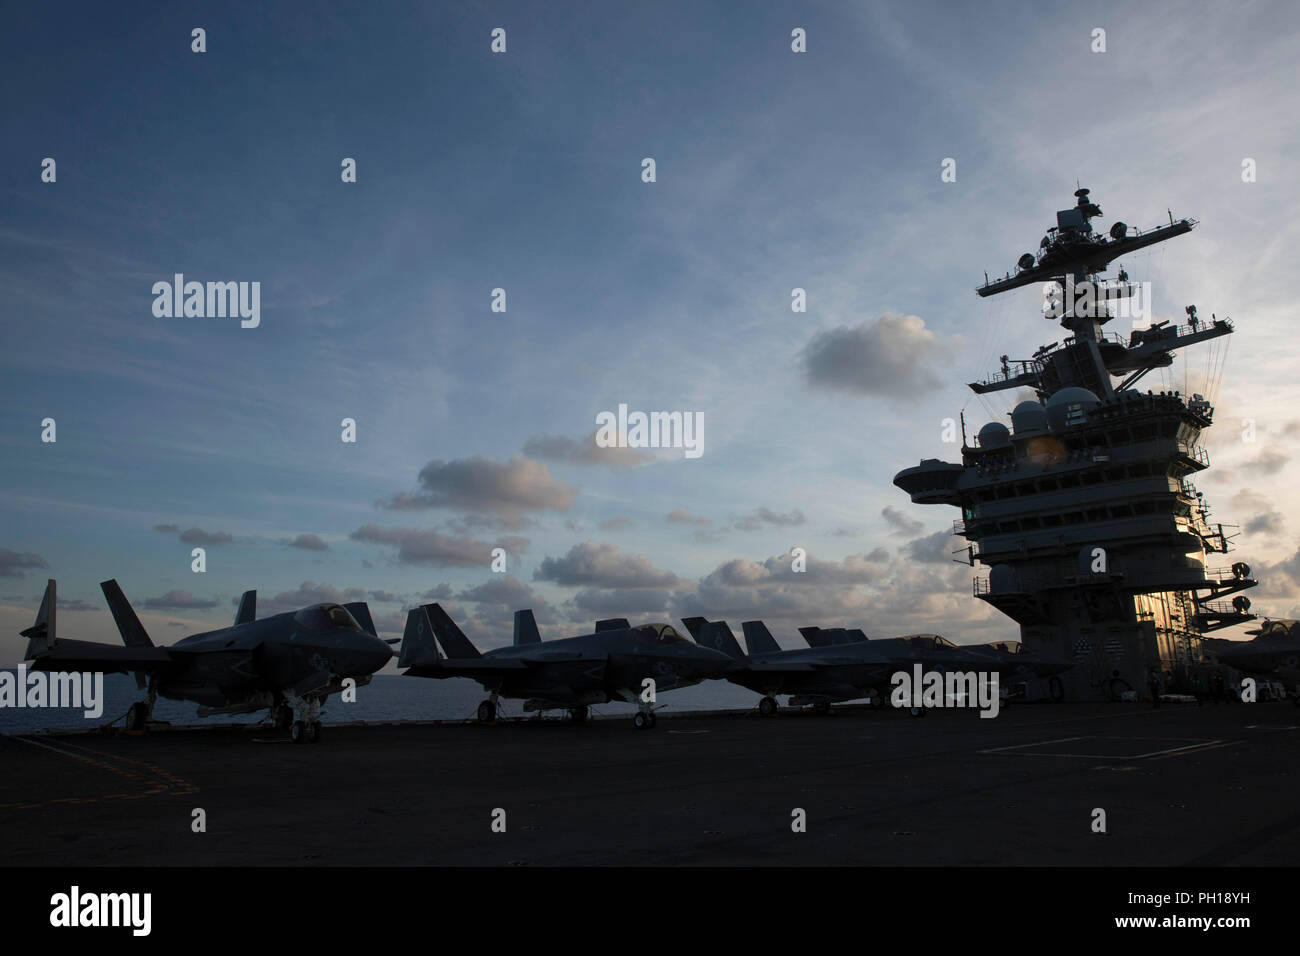 180820-N-GD018-0074 ATLANTIC OCEAN (Aug. 20, 2018) F-35C Lightning IIs assigned to the Rough Raiders of Strike Fighter Squadron (VFA) 125 sit secured on the flight deck aboard the Nimitz-class aircraft carrier USS Abraham Lincoln (CVN 72). (U.S. Navy photo by Mass Communication Specialist Seaman Amber Smalley/Released) - Stock Image